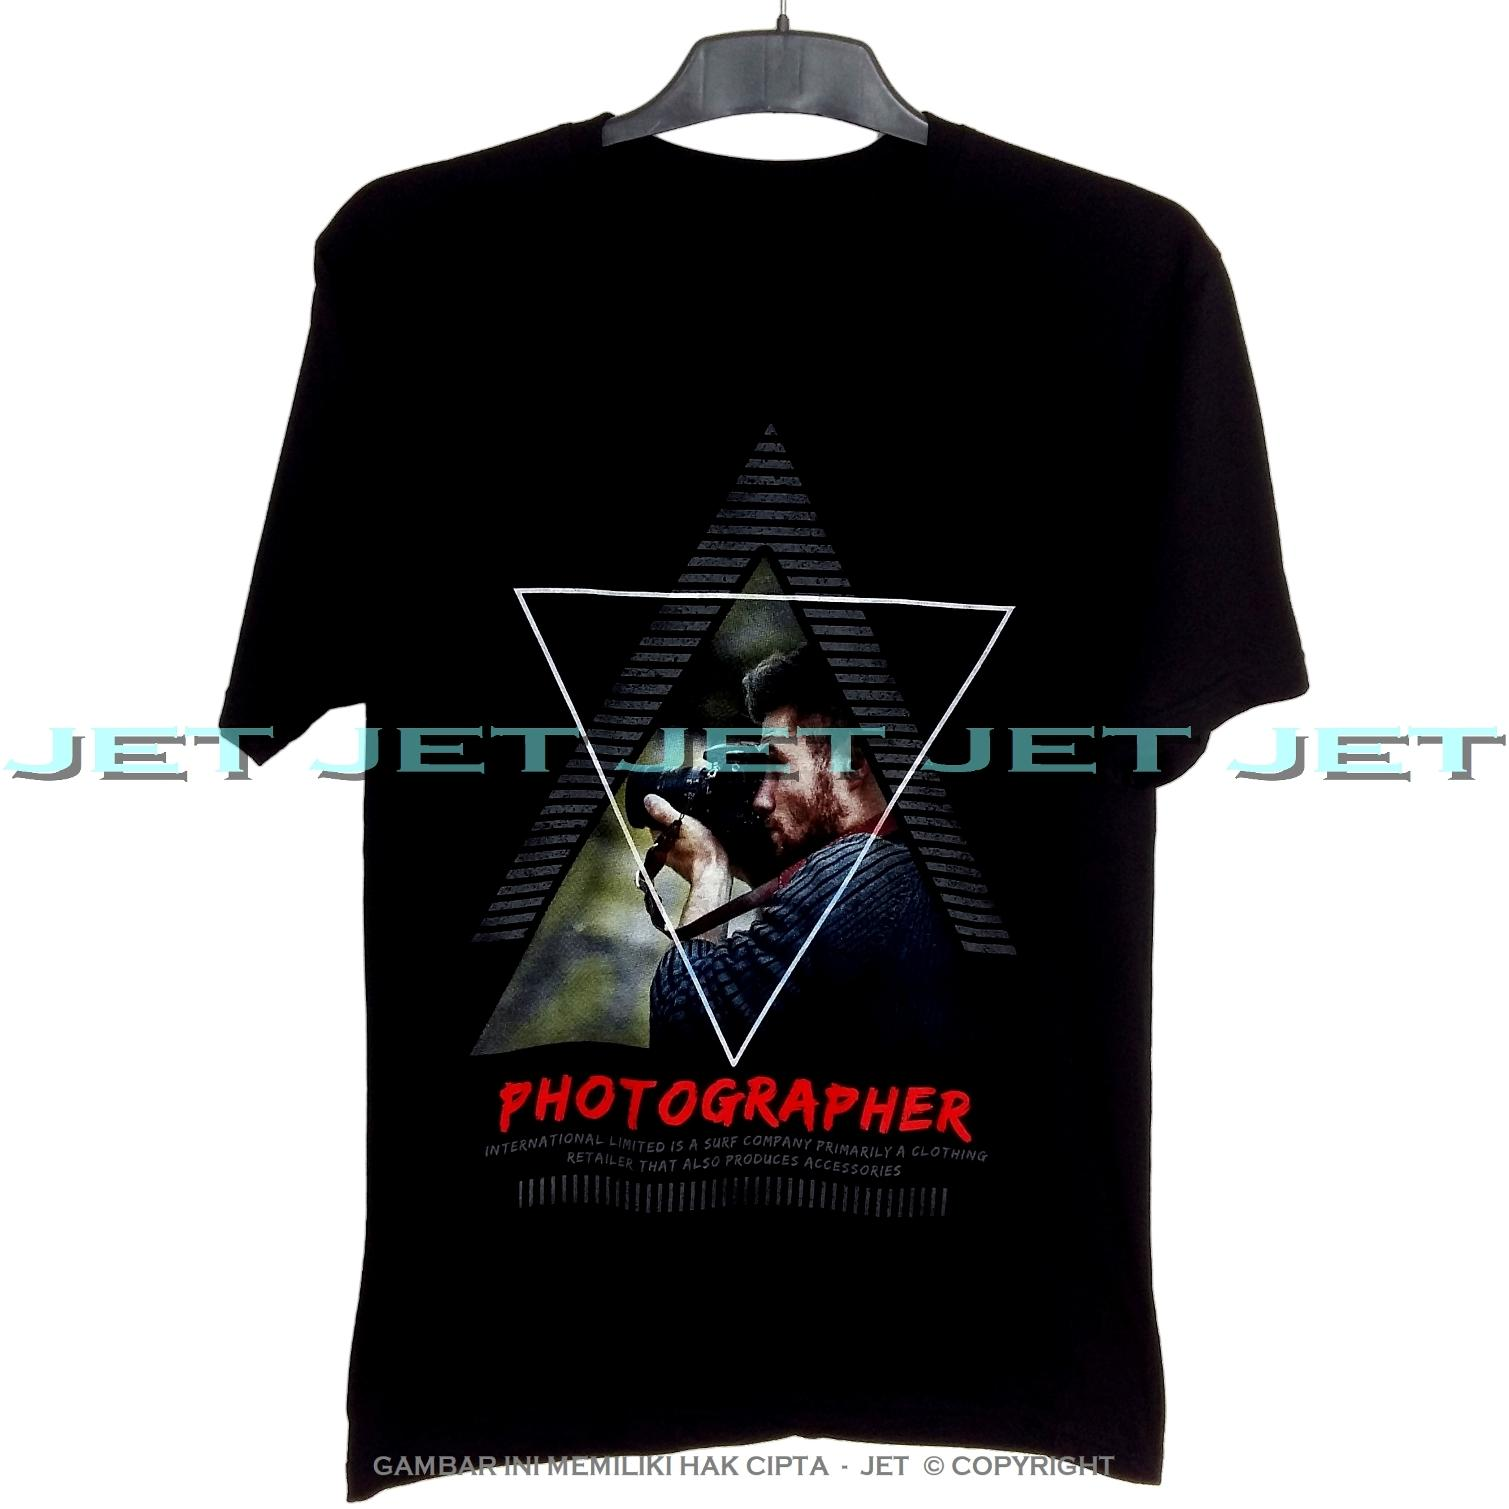 JeT - Black T-Shirt Premium Cotton Combed Photographer Fotografi Camera